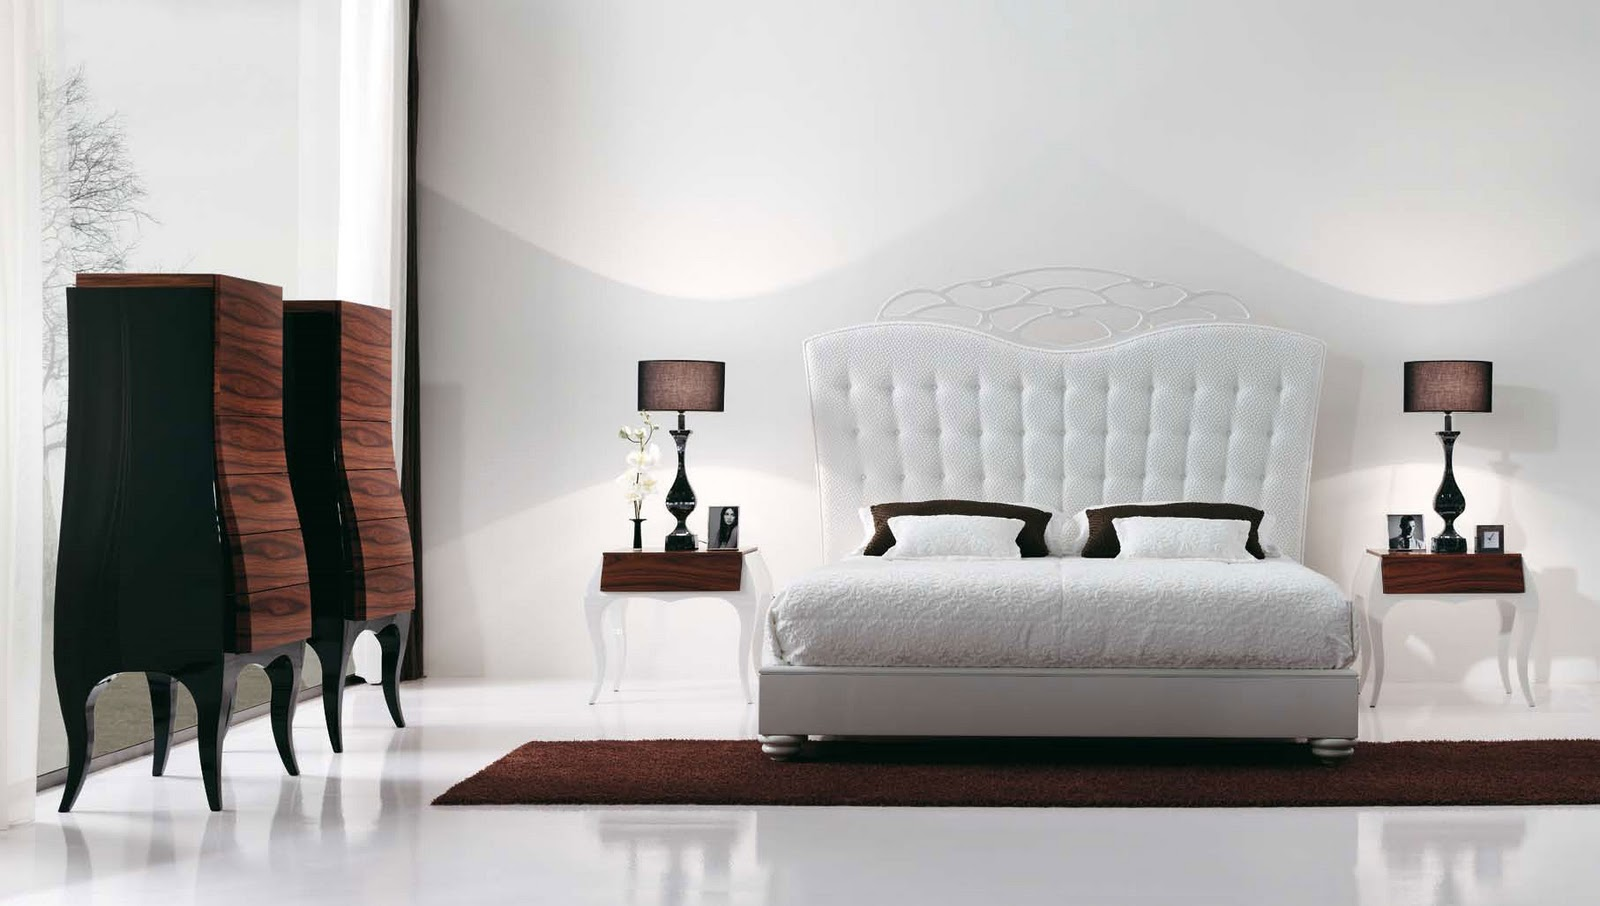 غرف نوم دلوعه  Luxury-white-bedroom-furniture